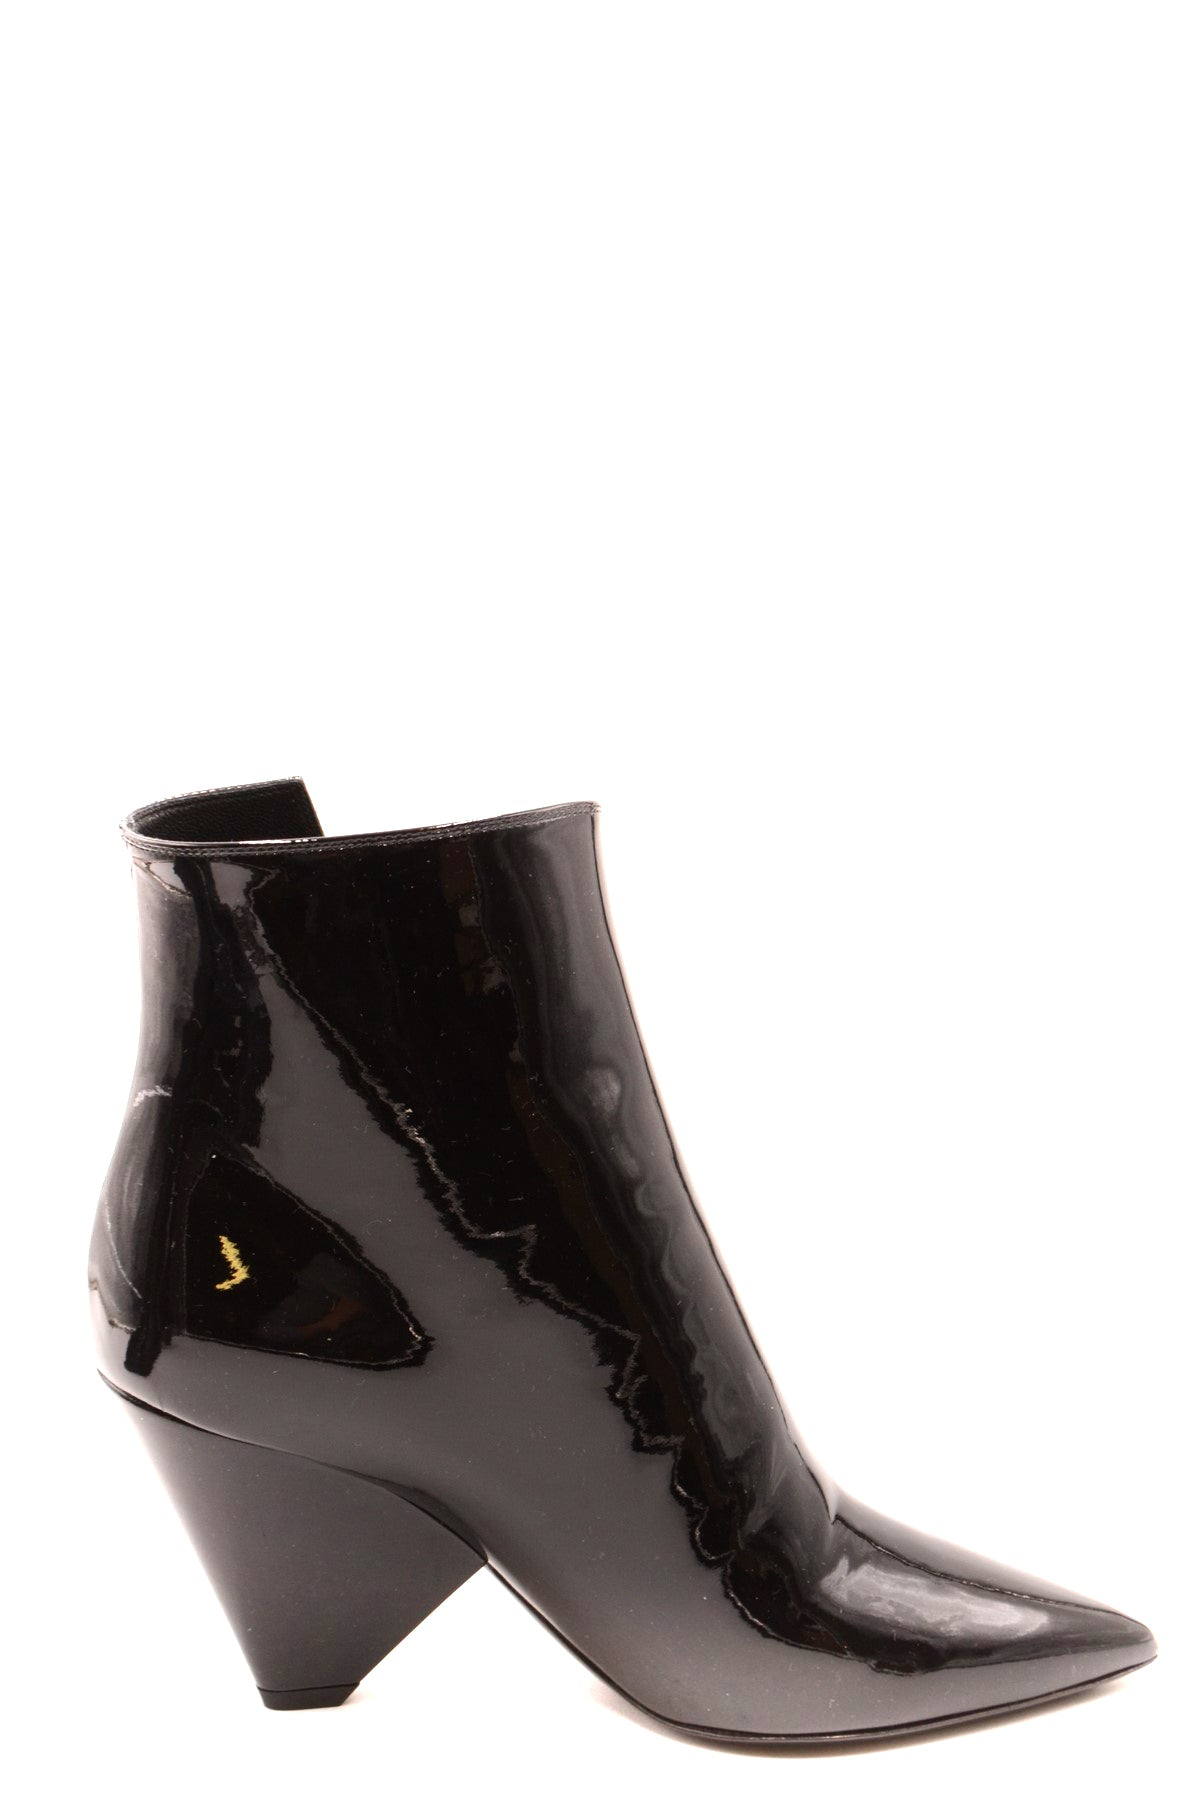 Shoes Saint Laurent-Women's Fashion - Women's Shoes - Women's Boots-36-Product Details Terms: New With LabelMain Color: BlackType Of Accessory: BootsSeason: Fall / WinterMade In: ItalyGender: WomanHeel'S Height: 7Size: EuComposition: Leather 100%Year: 2019Manufacturer Part Number: 543838 0Np00 1000-Keyomi-Sook